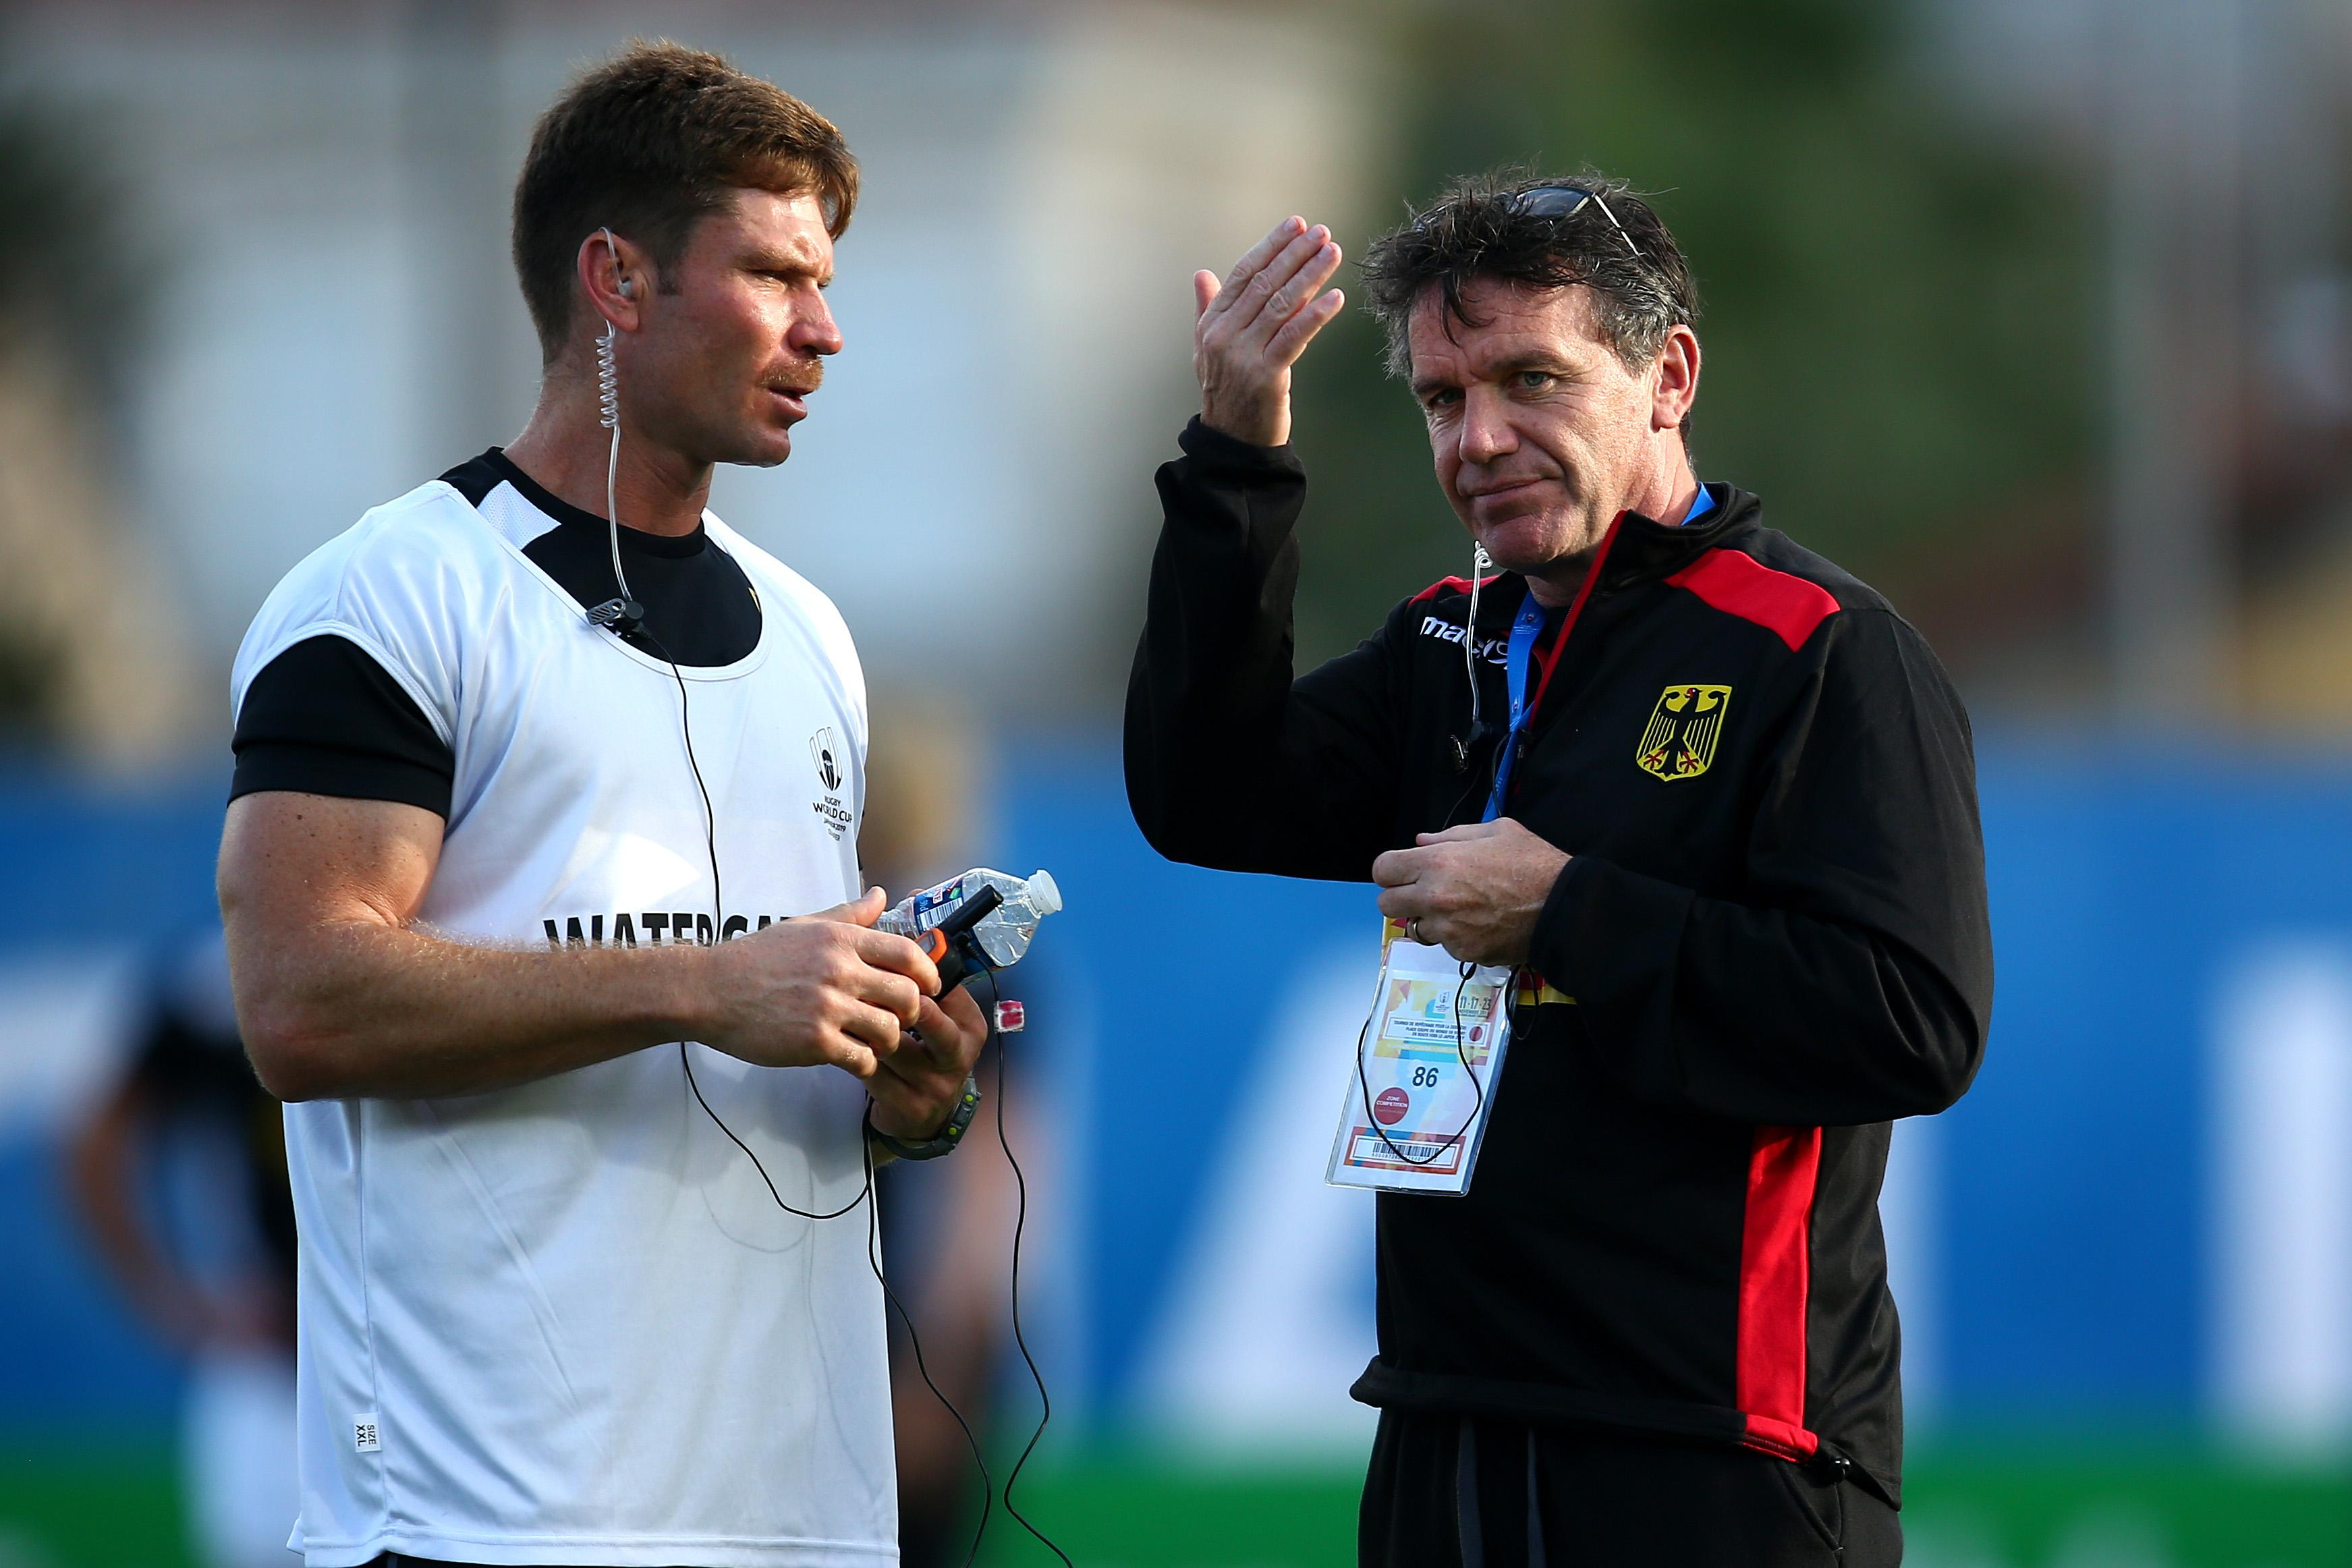 Ford's dad Mike is Germany's coach and won his first game in charge against Hong Kong last week